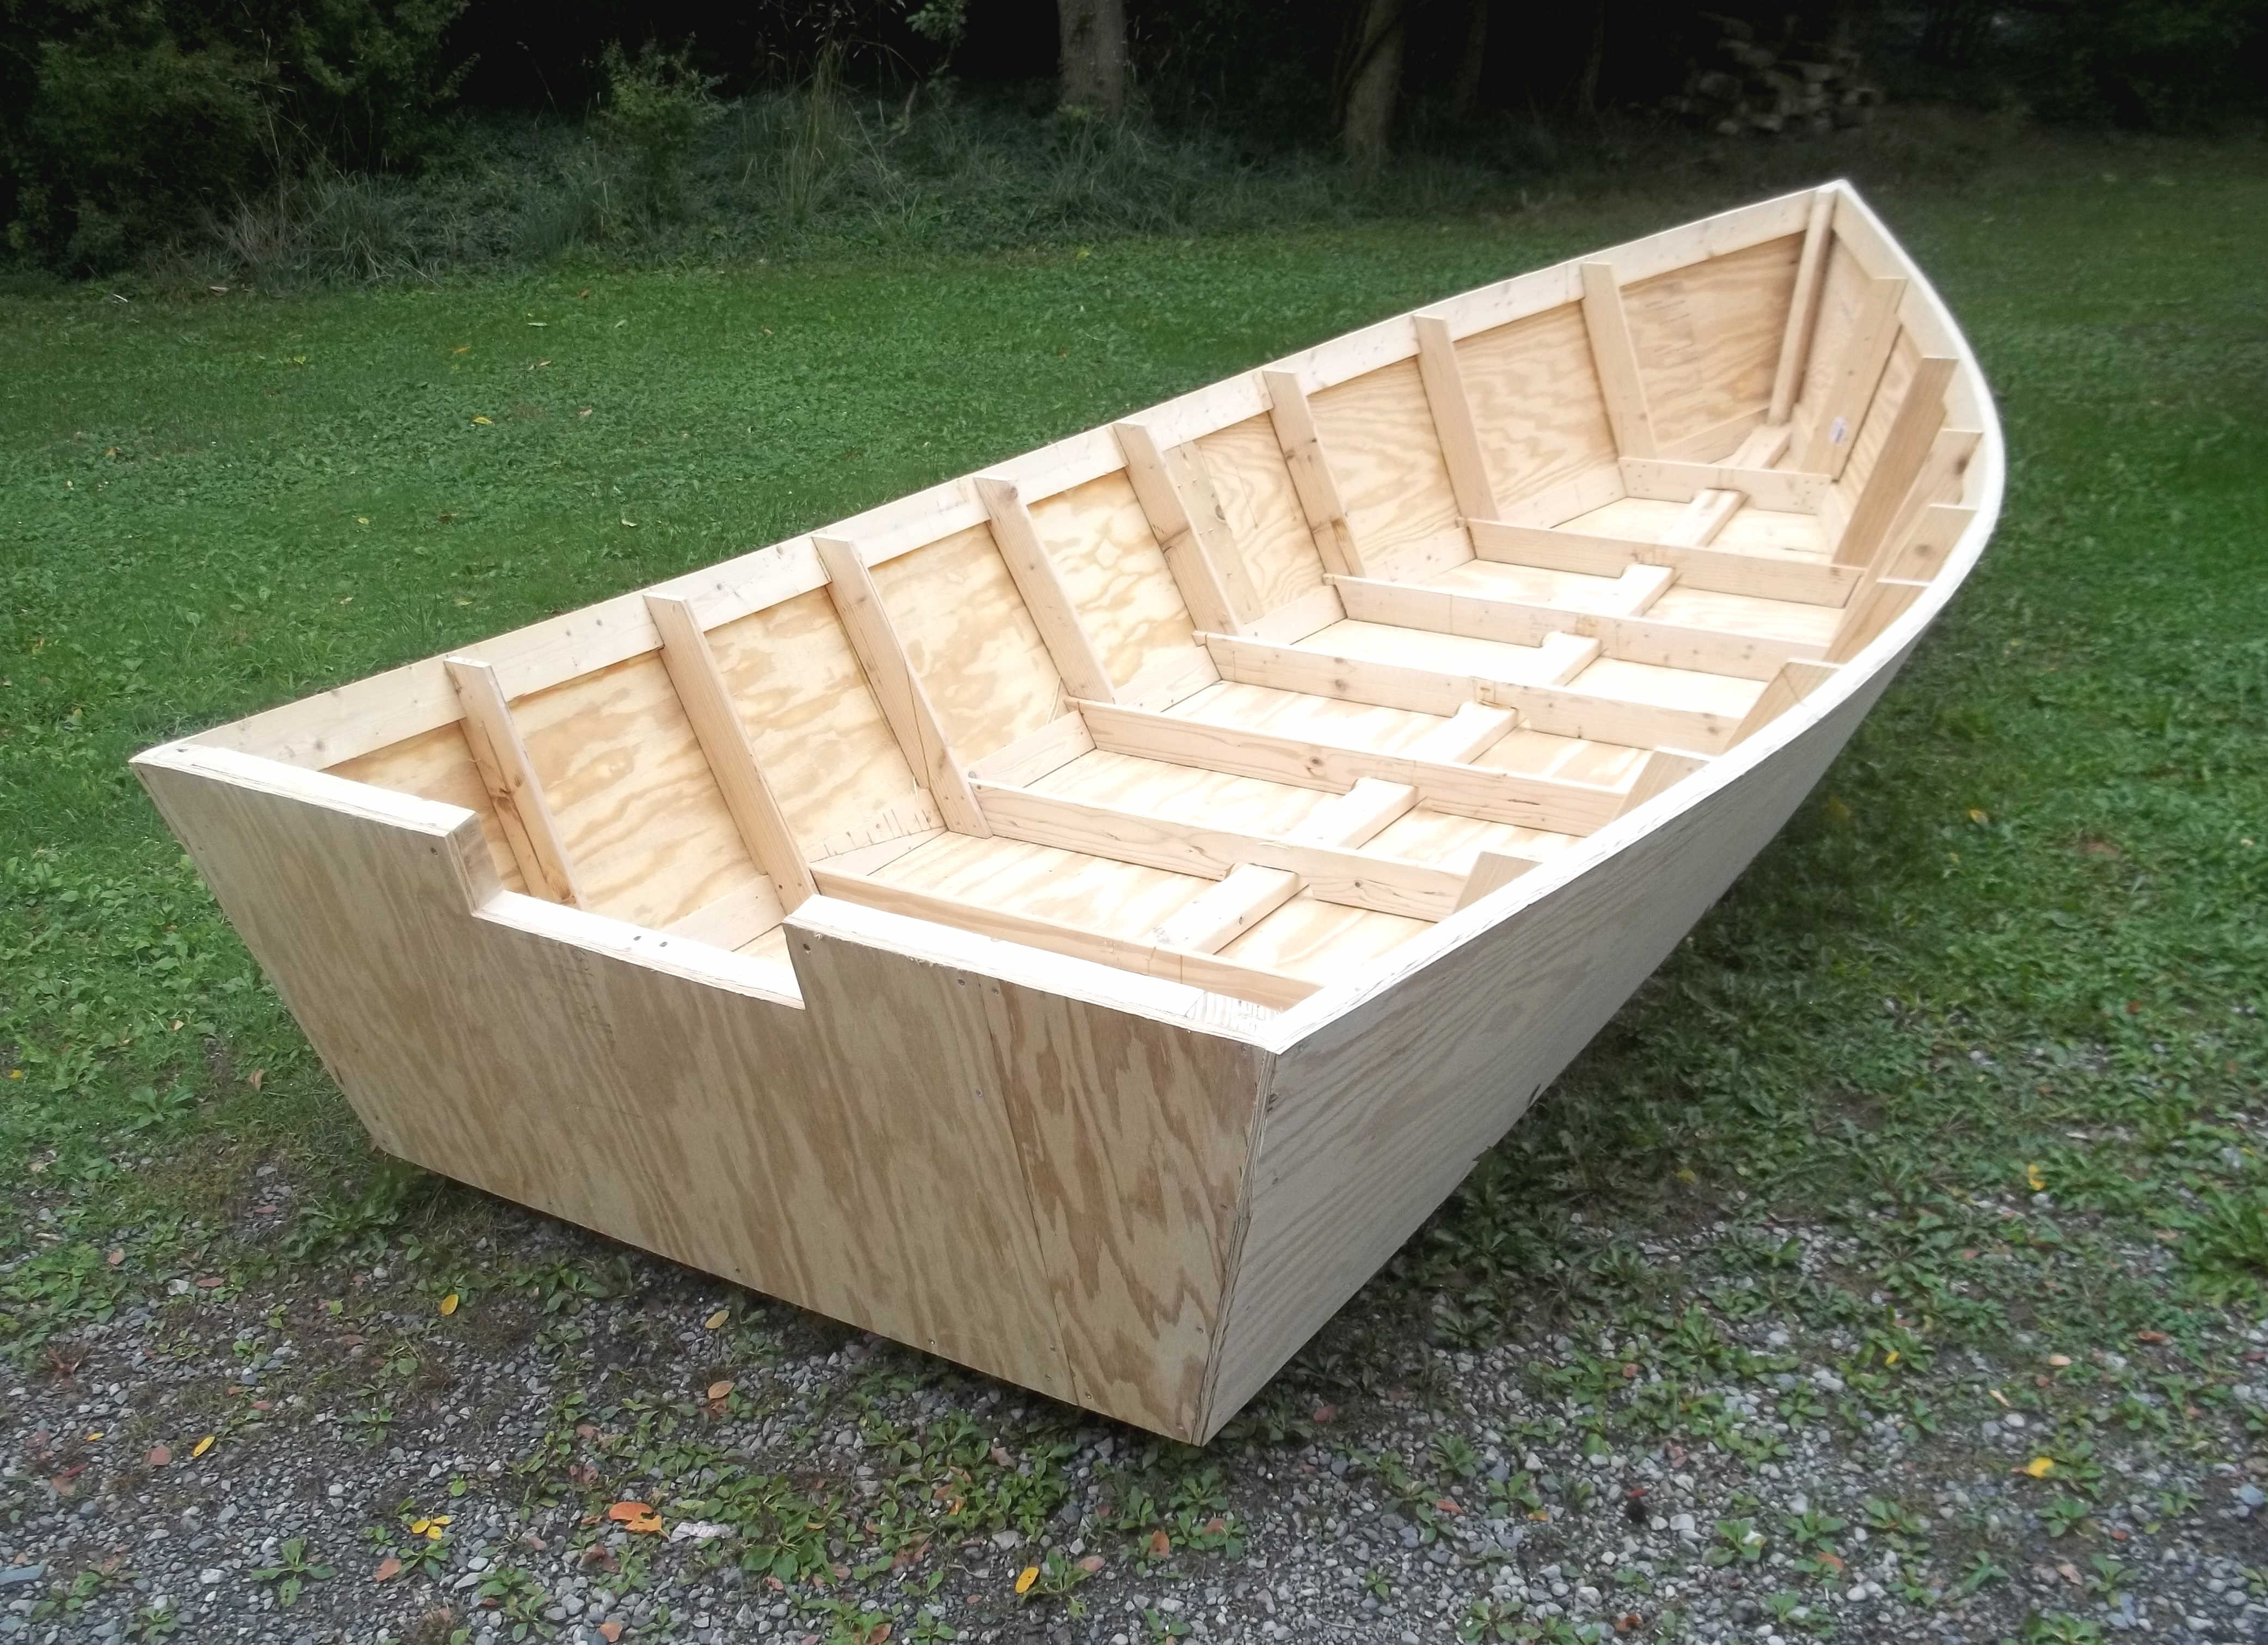 Best ideas about DIY Boat Plans . Save or Pin Boatbuilding Tips and Tricks Now.